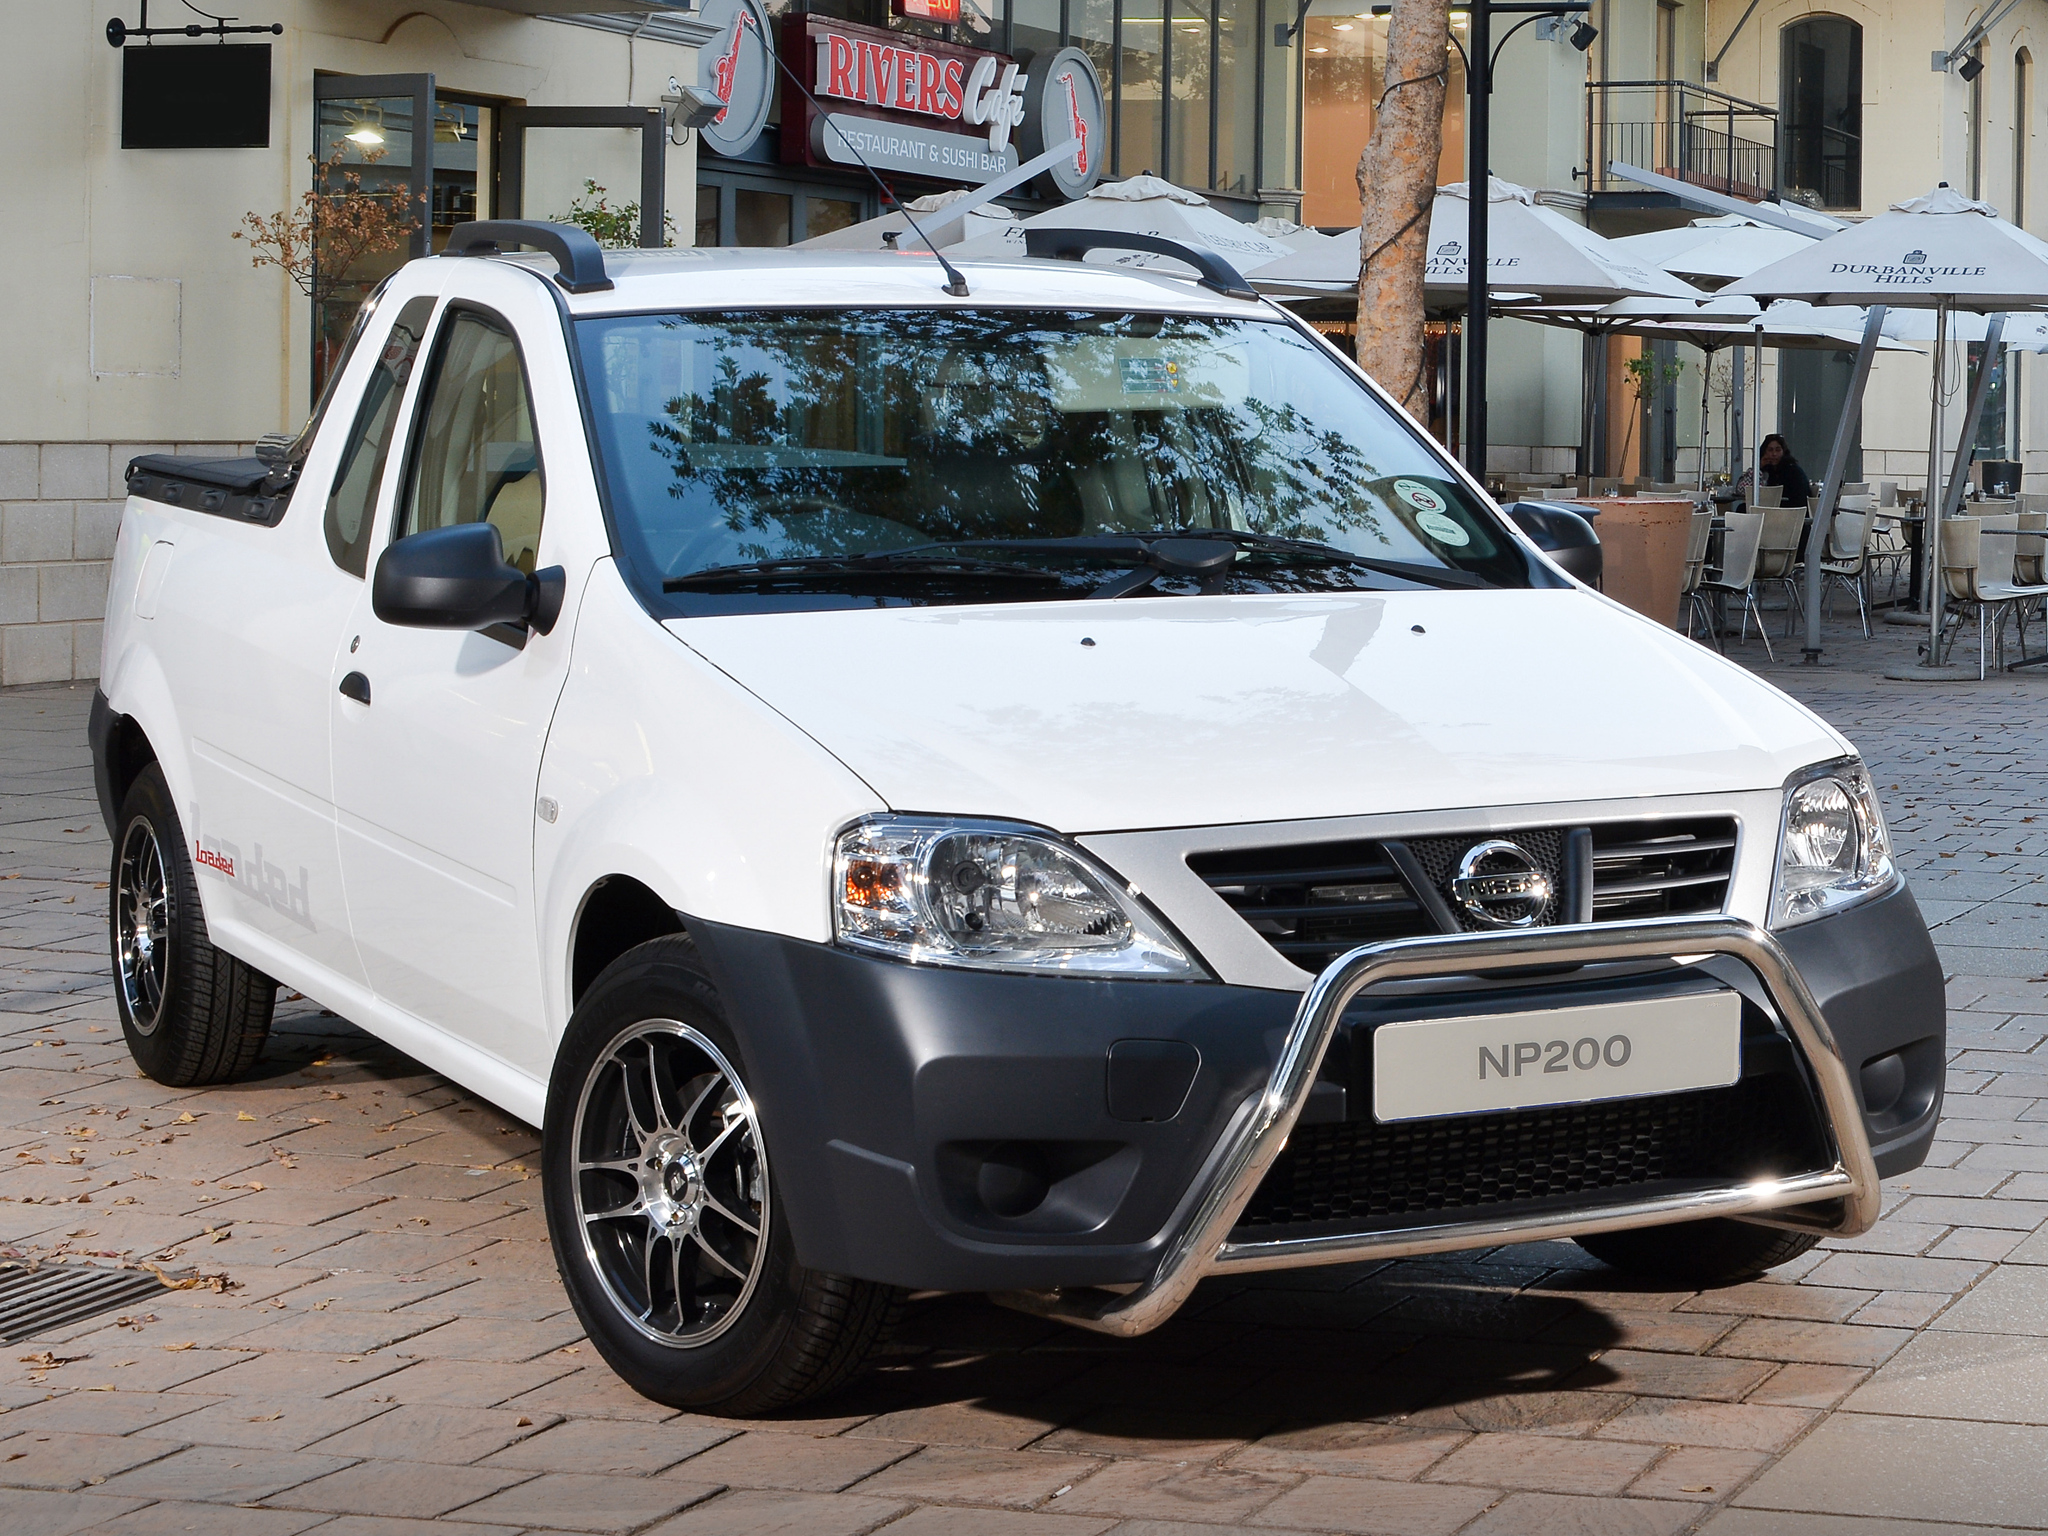 nissan np200 is a dacia logan pick up in south africa. Black Bedroom Furniture Sets. Home Design Ideas